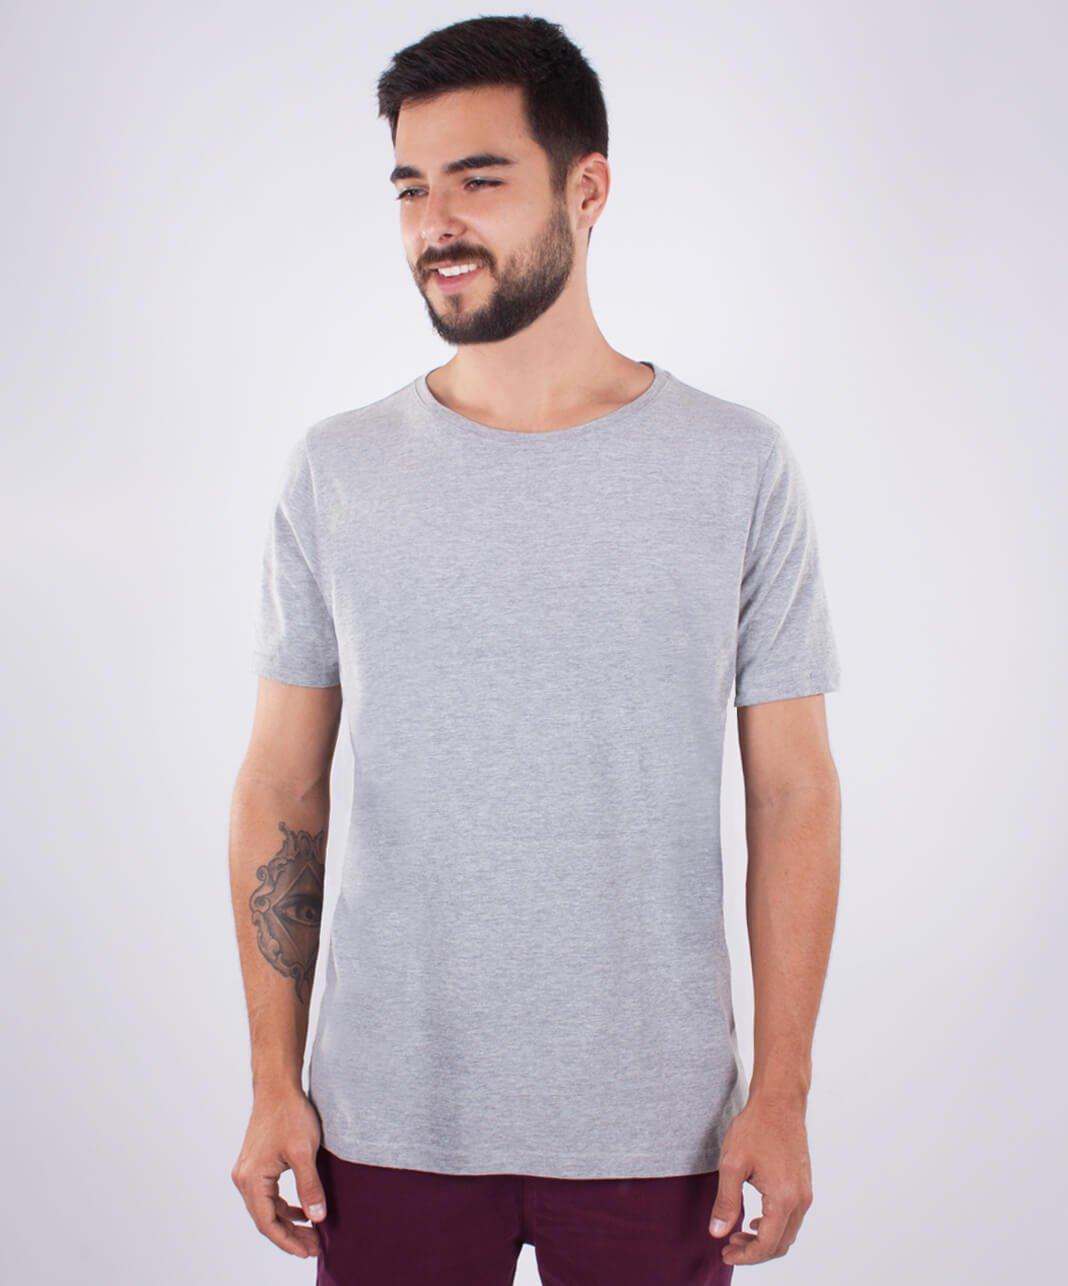 Foto do produto Camiseta Eco Basic